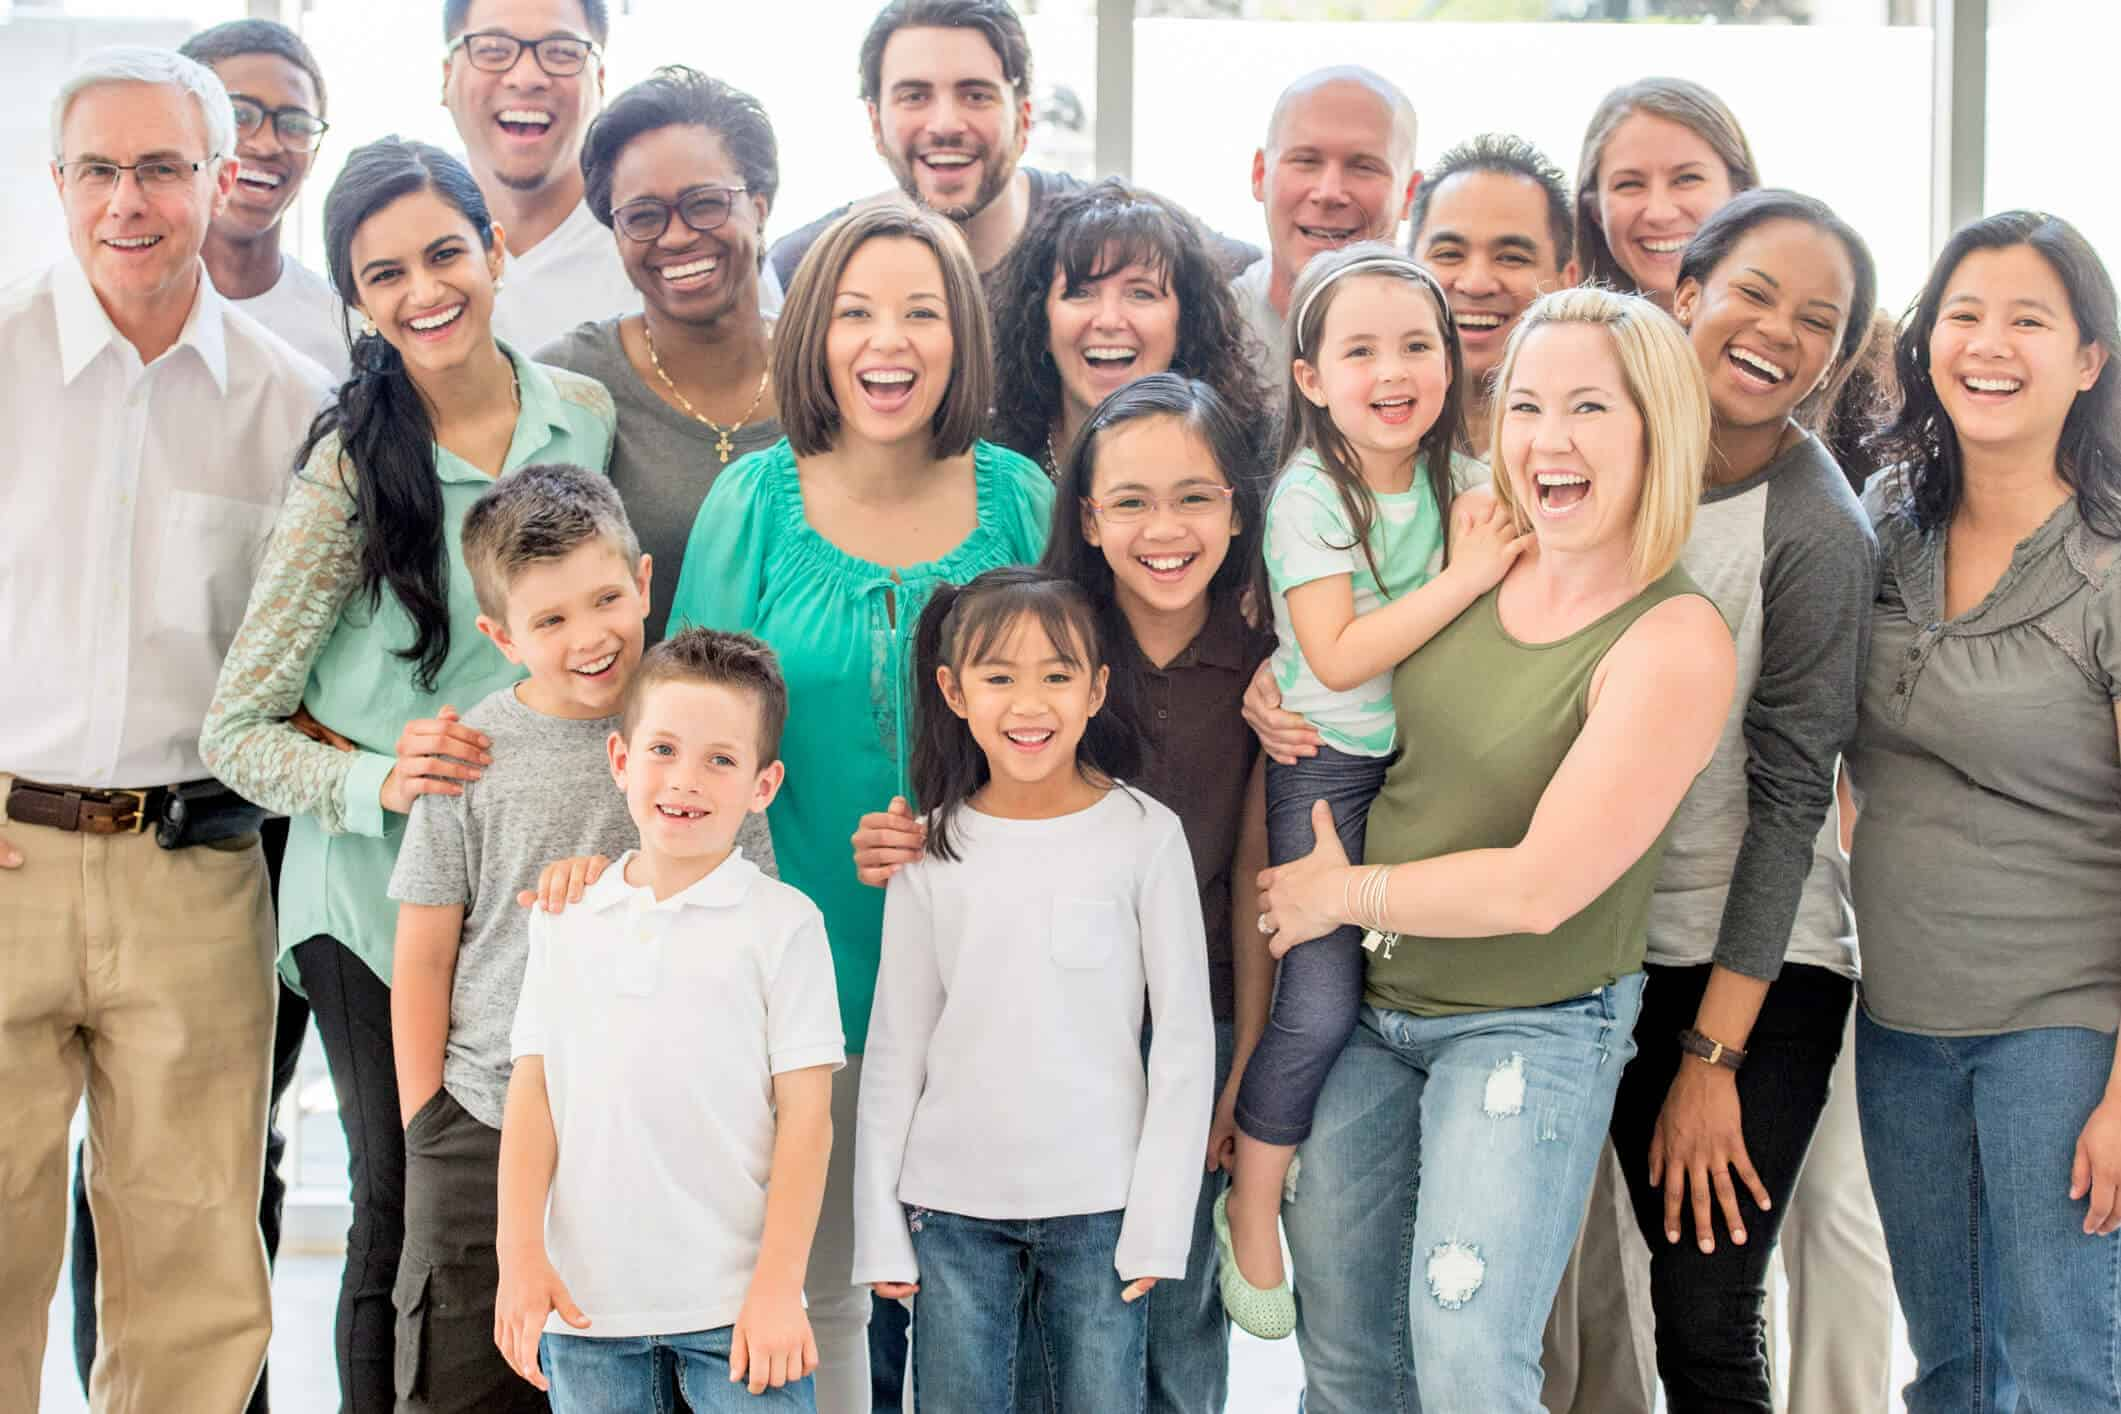 A multi-ethnic and multi-generational group of people standing together, they are smiling and laughing while looking at the camera.